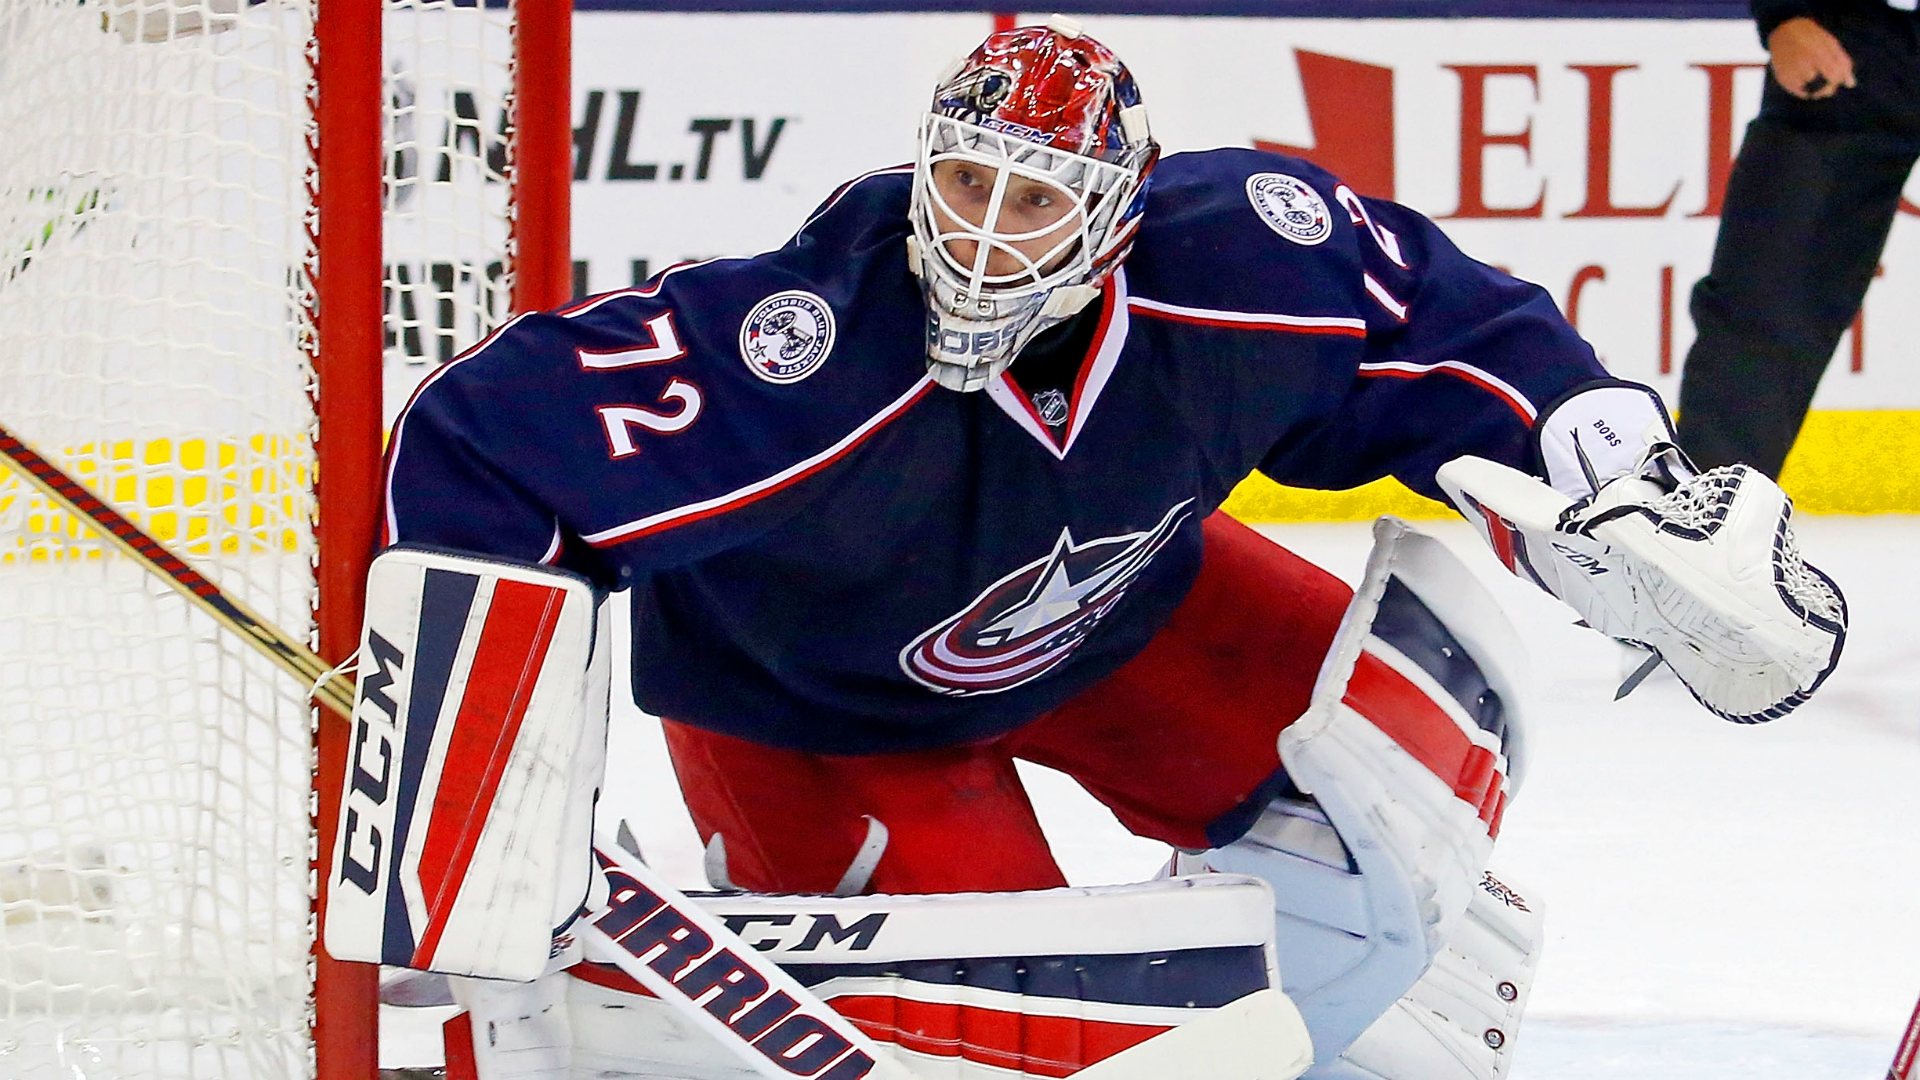 Columbus Blue Jackets sit goaltender Sergei Bobrovsky due to 'internal matter'